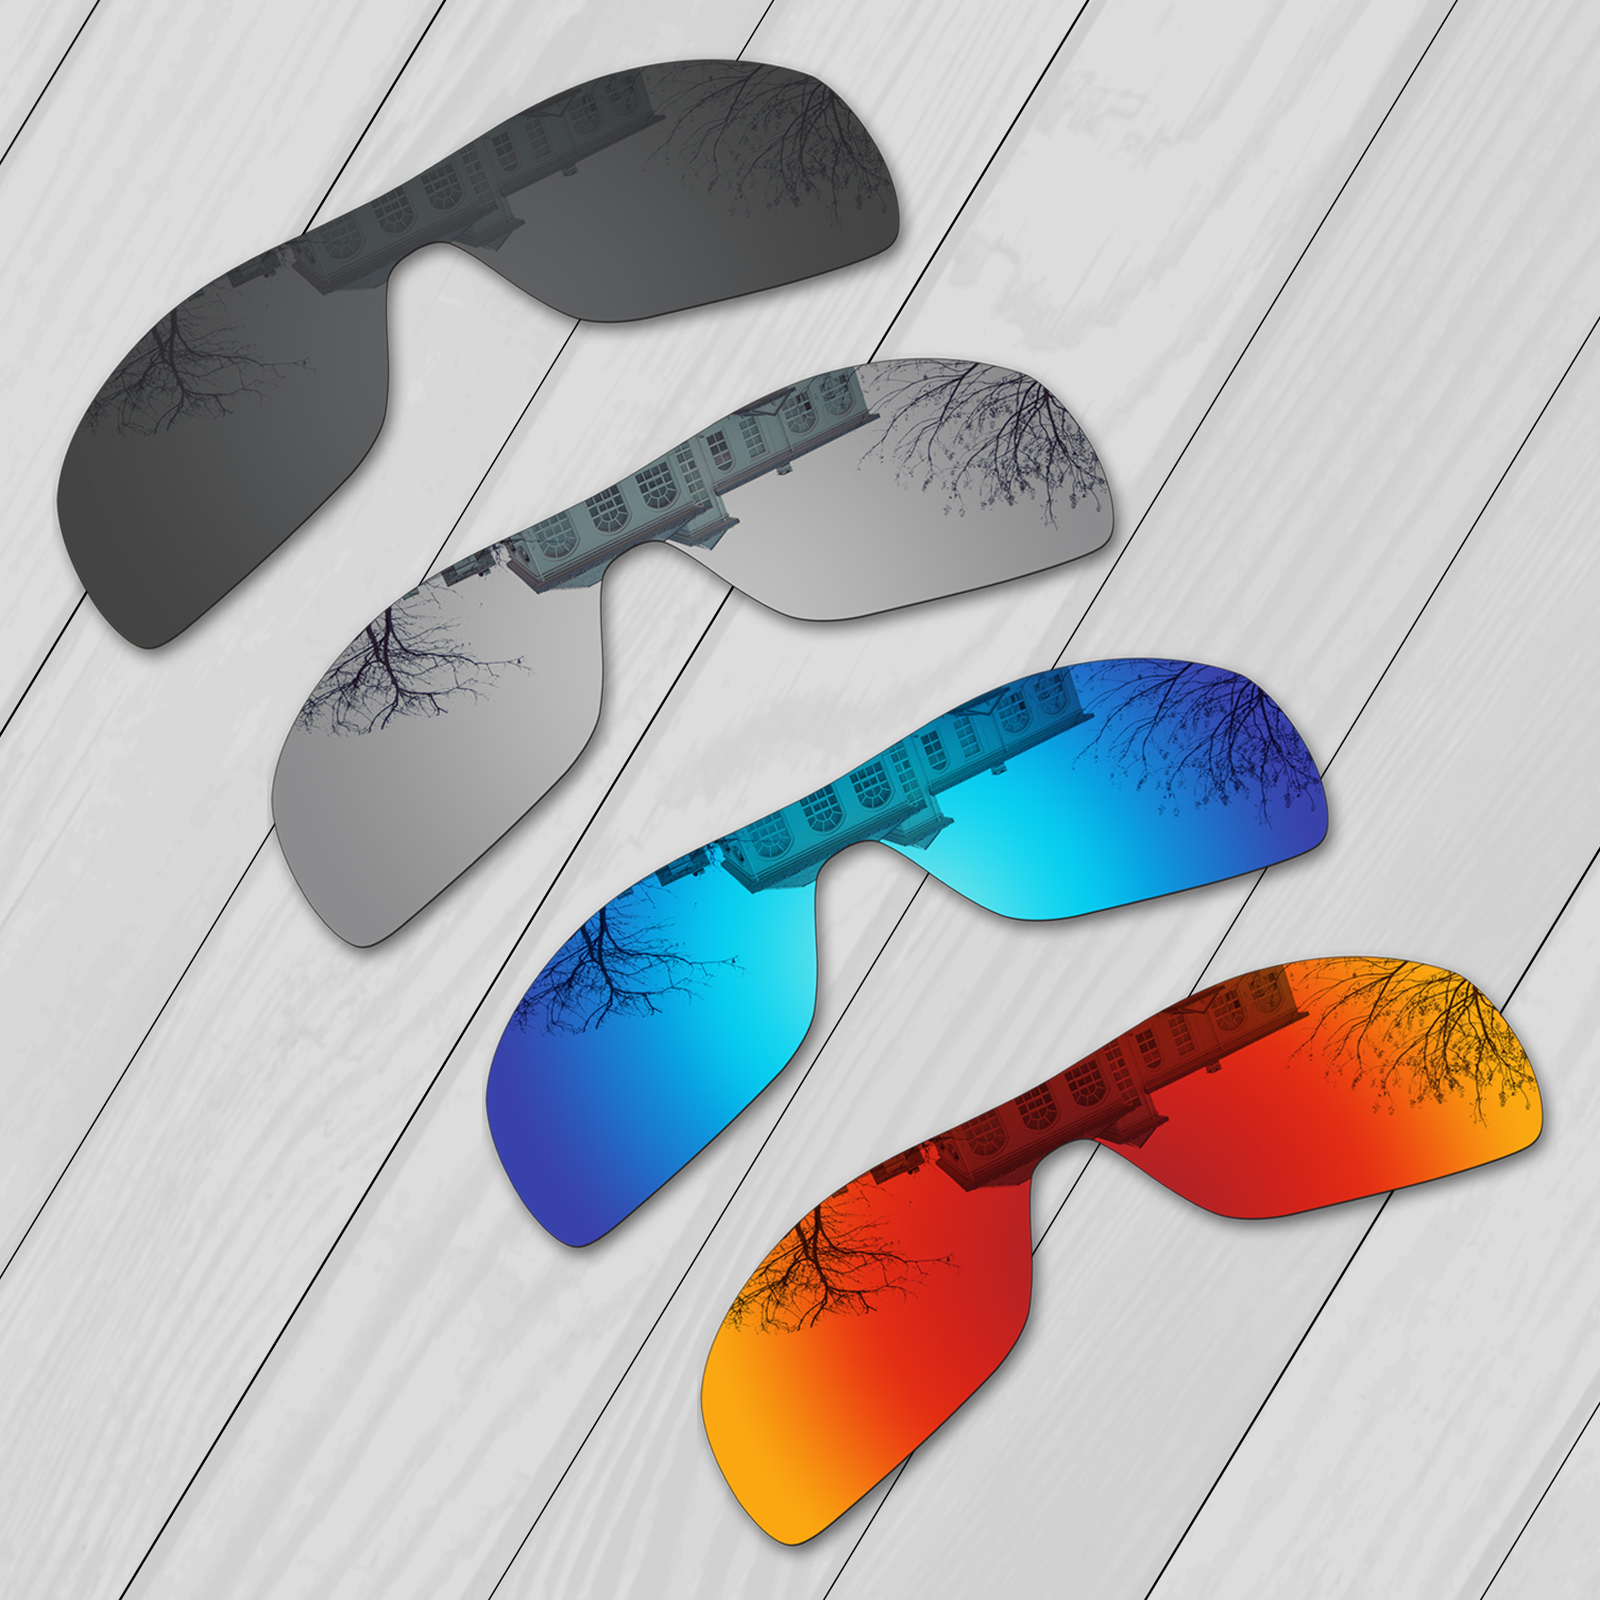 E.O.S 4 Pieces Black & Silver & Ice Blue & Fire Red Polarized ReplacementLensesforOakleyTurbine Rotor OO9307 Sunglasses